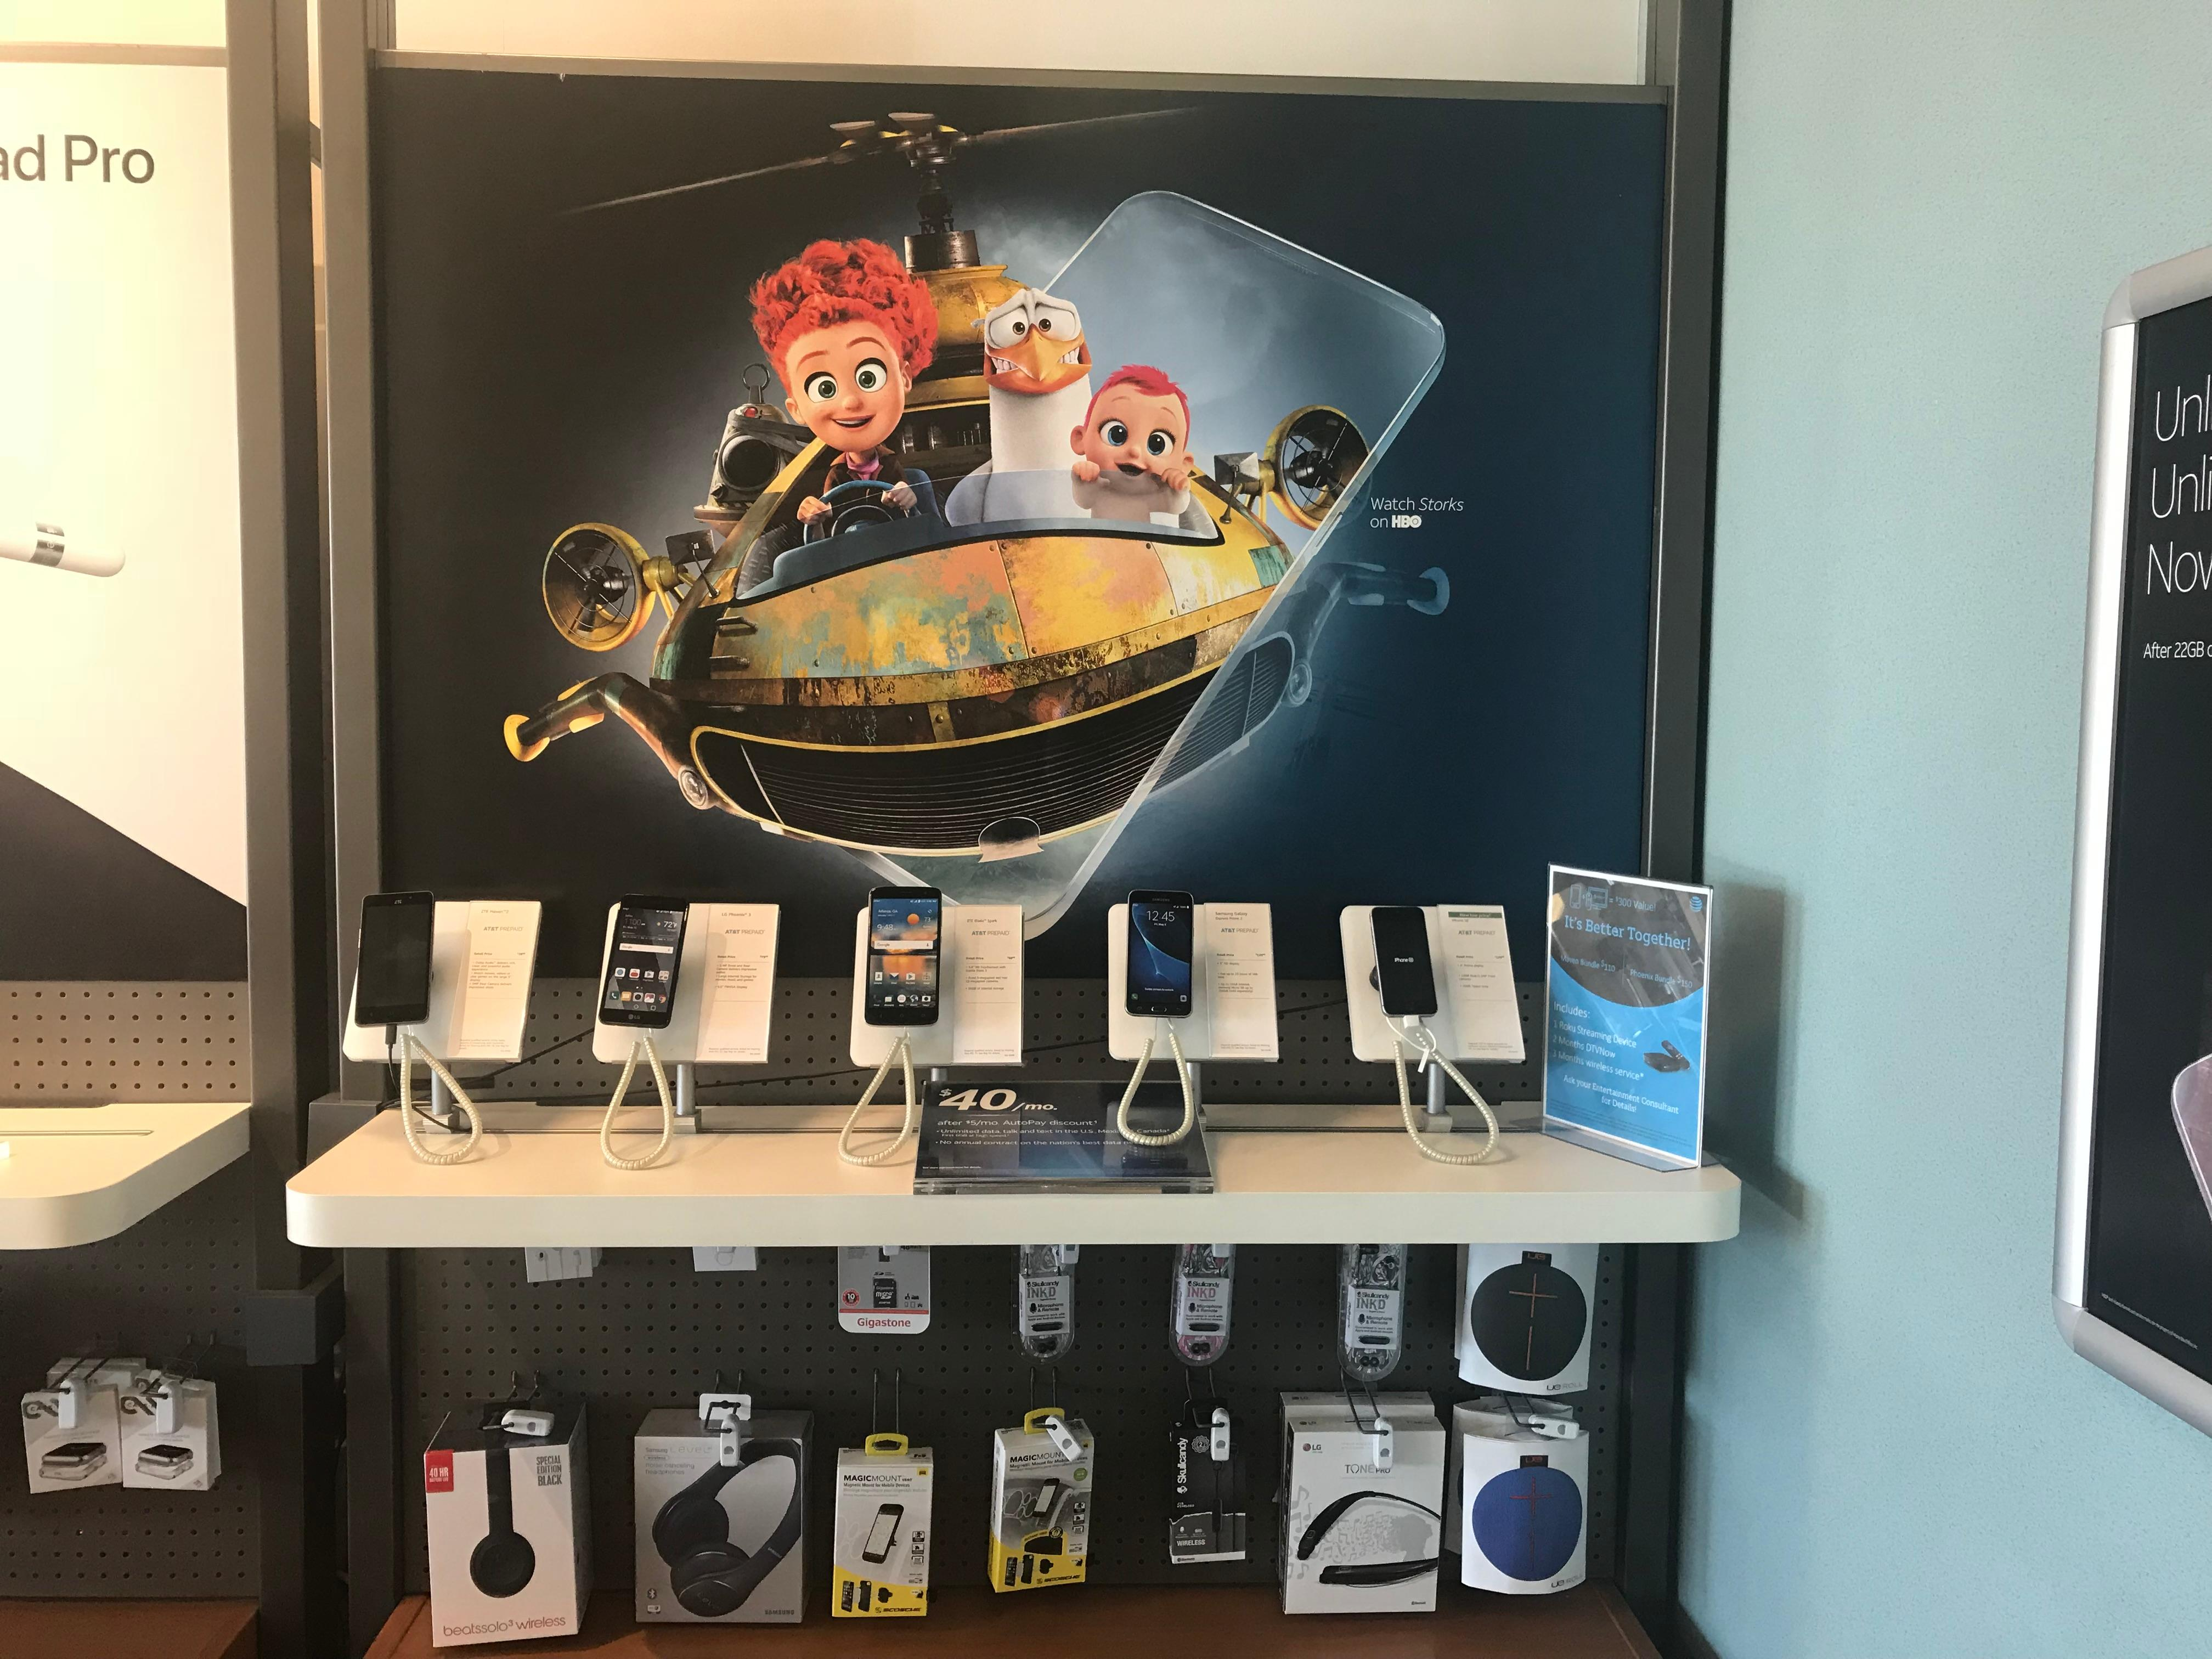 AT&T Store image 14